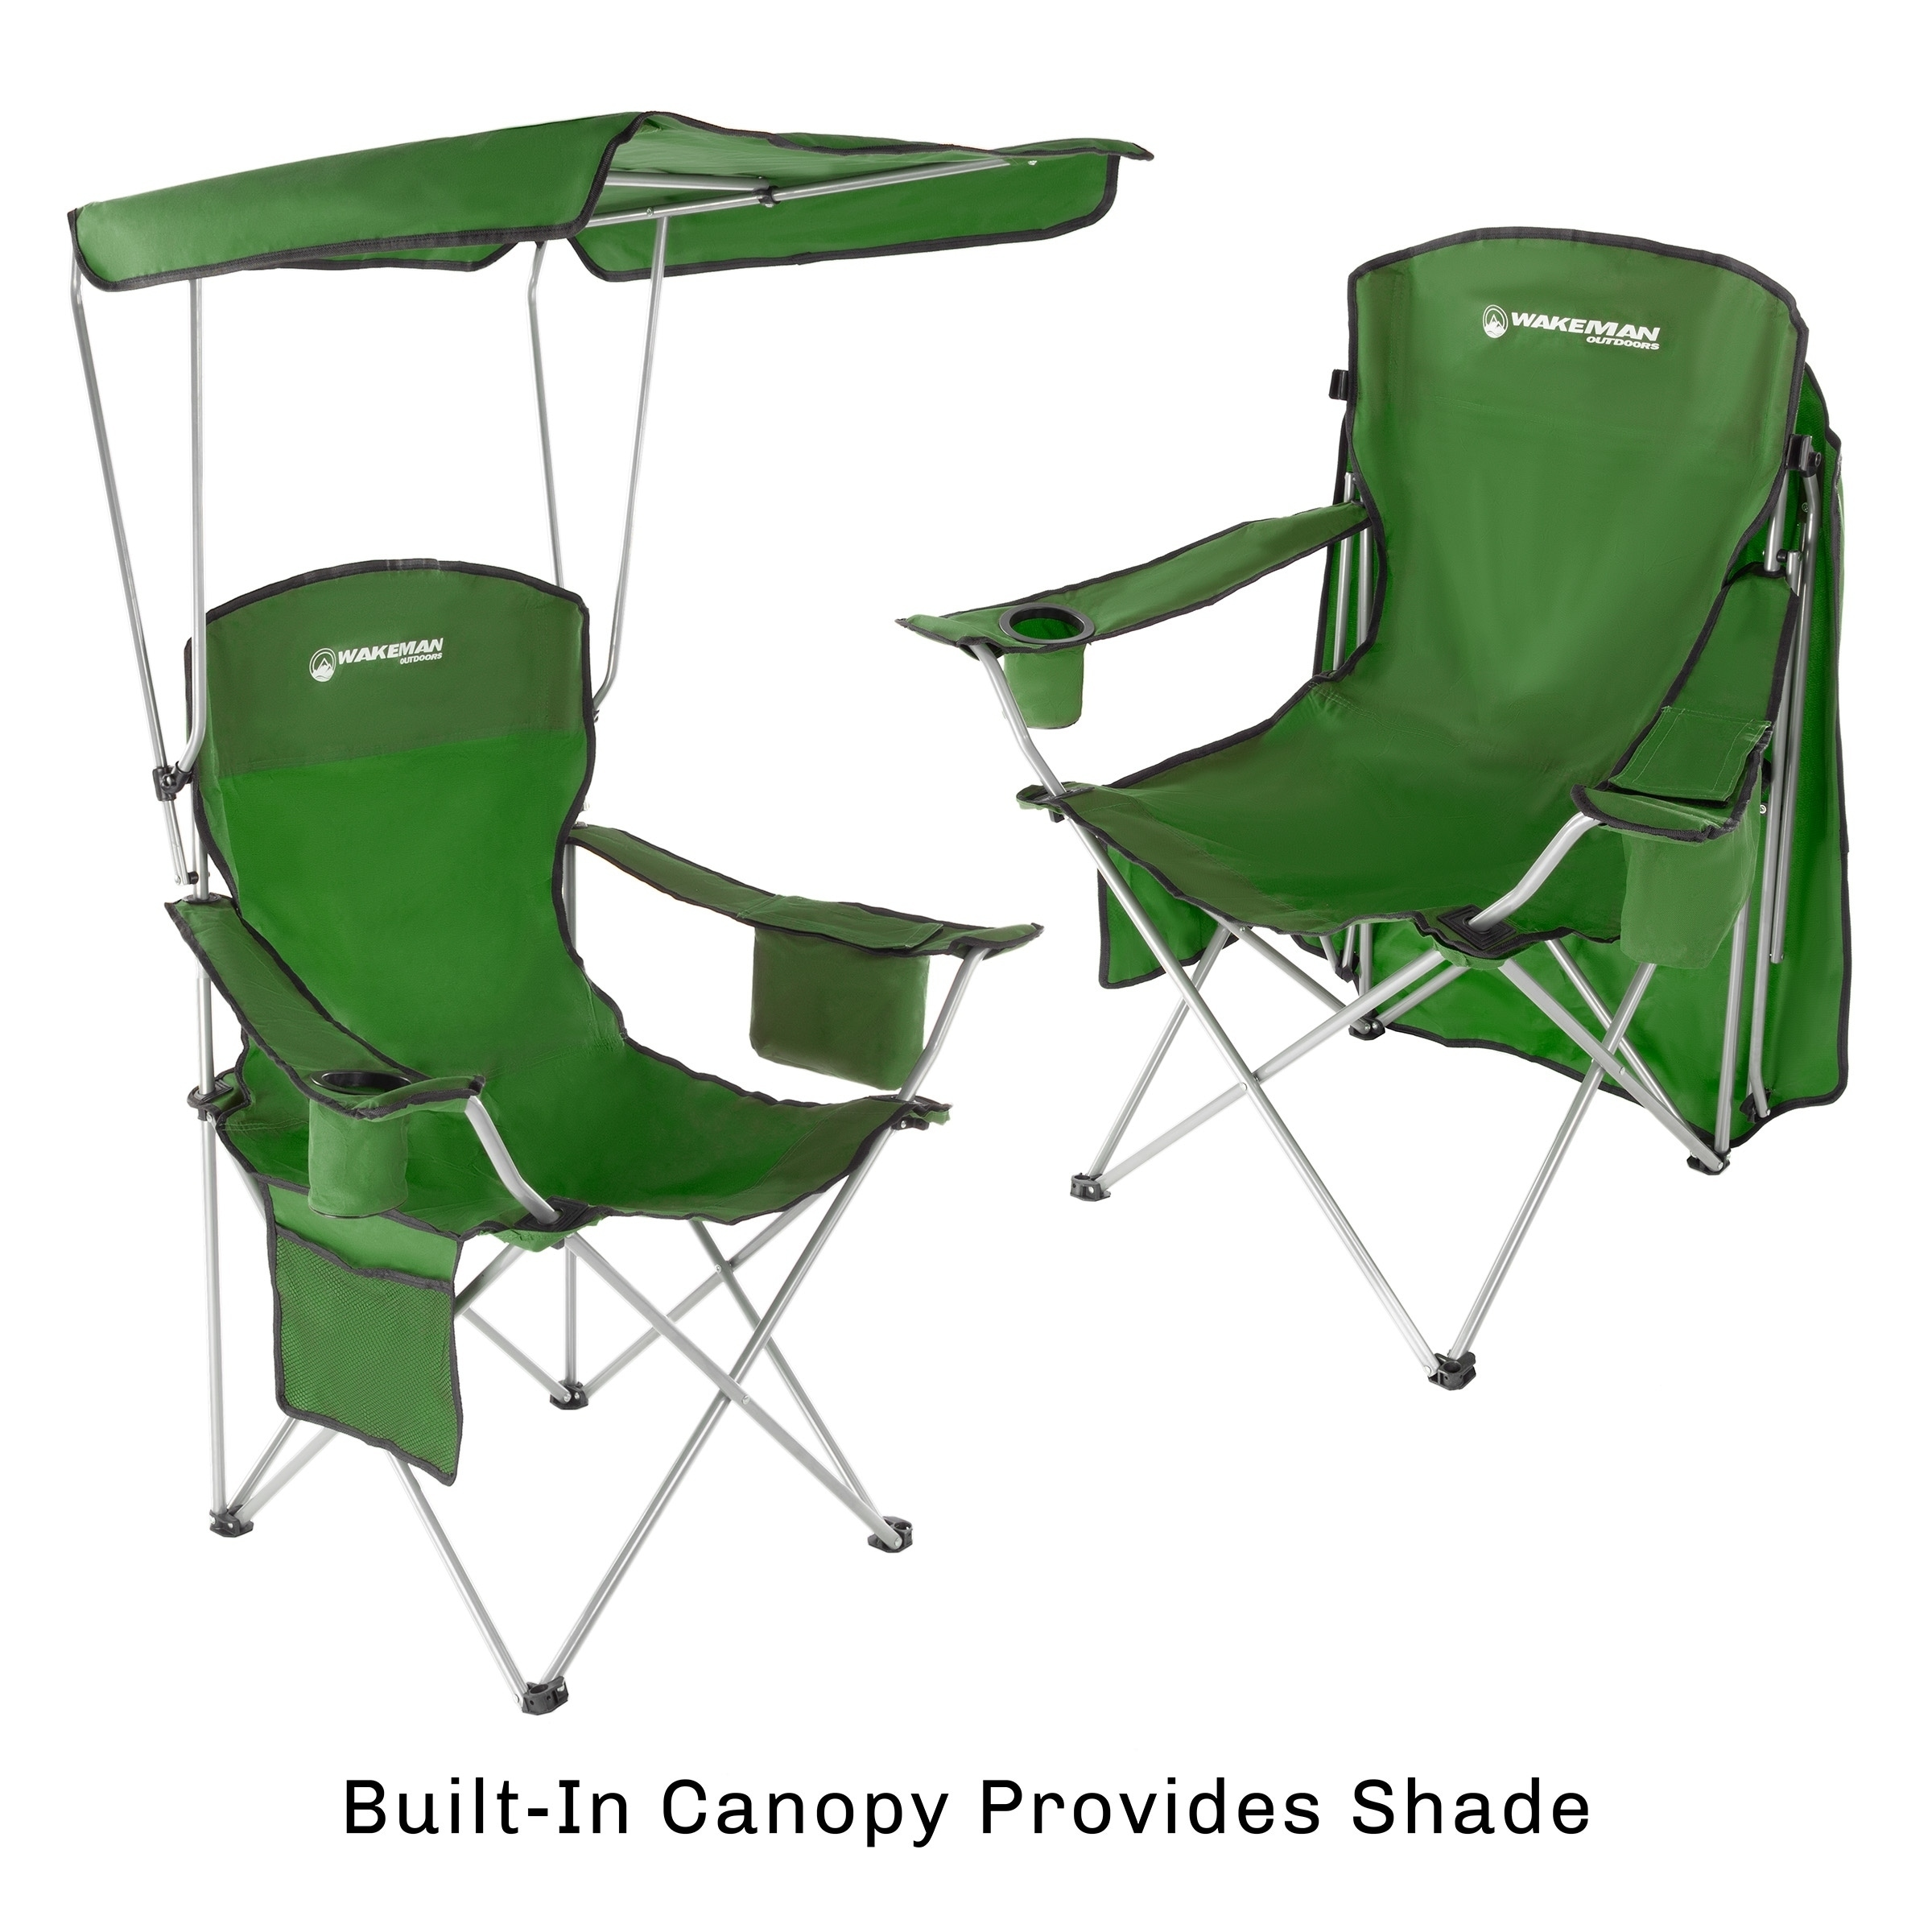 Camp Chair Canopy 300lbs Capacity By Wakeman Outdoors